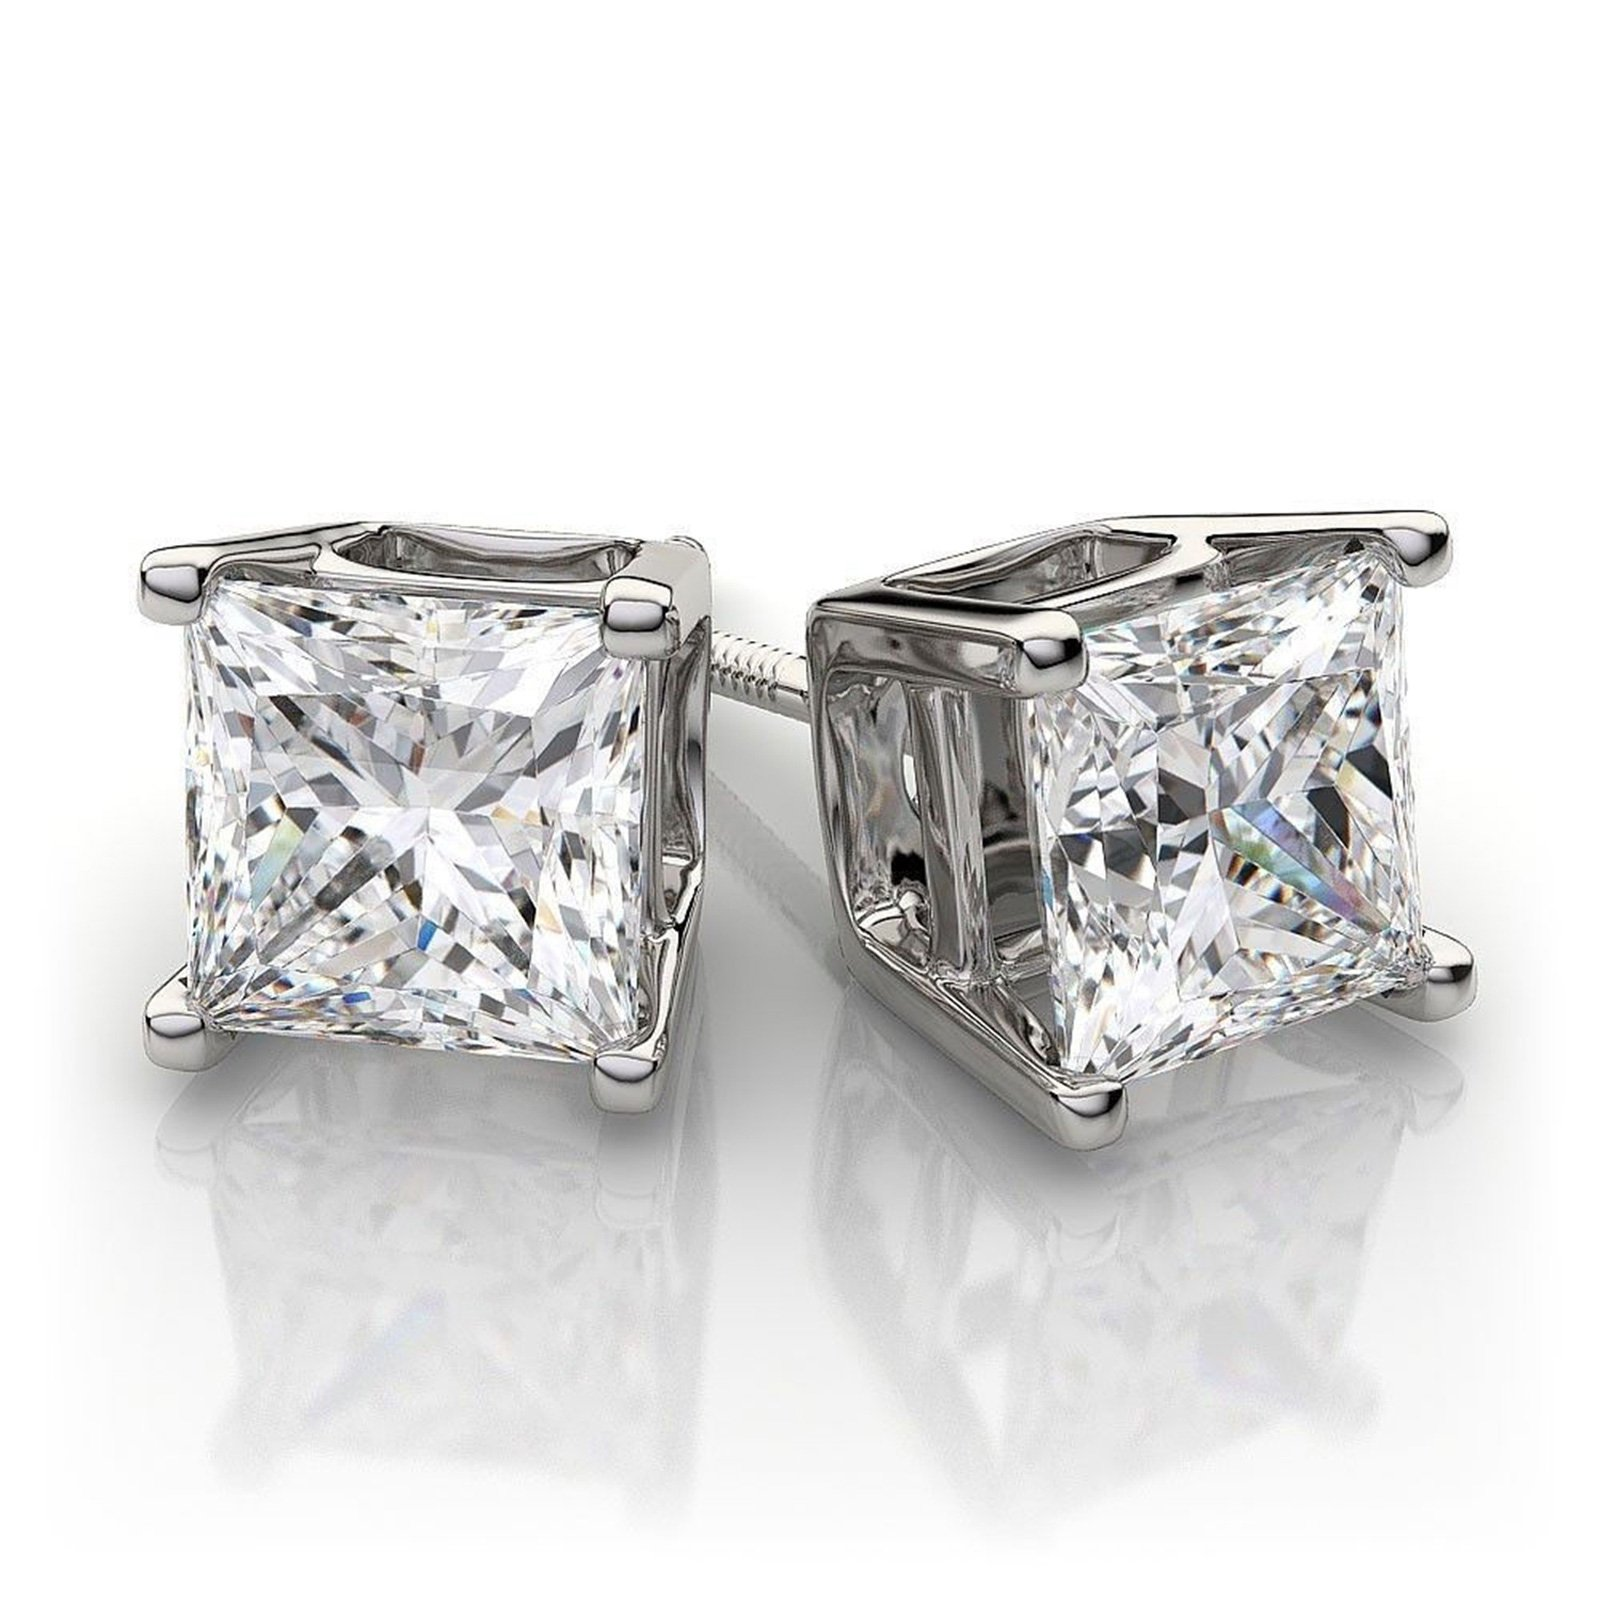 4.0 ctw Princess Brilliant Cut Simulated Diamond CZ Solitaire Stud Earrings in 14k White Gold Screw Back by Clara Pucci (Image #3)